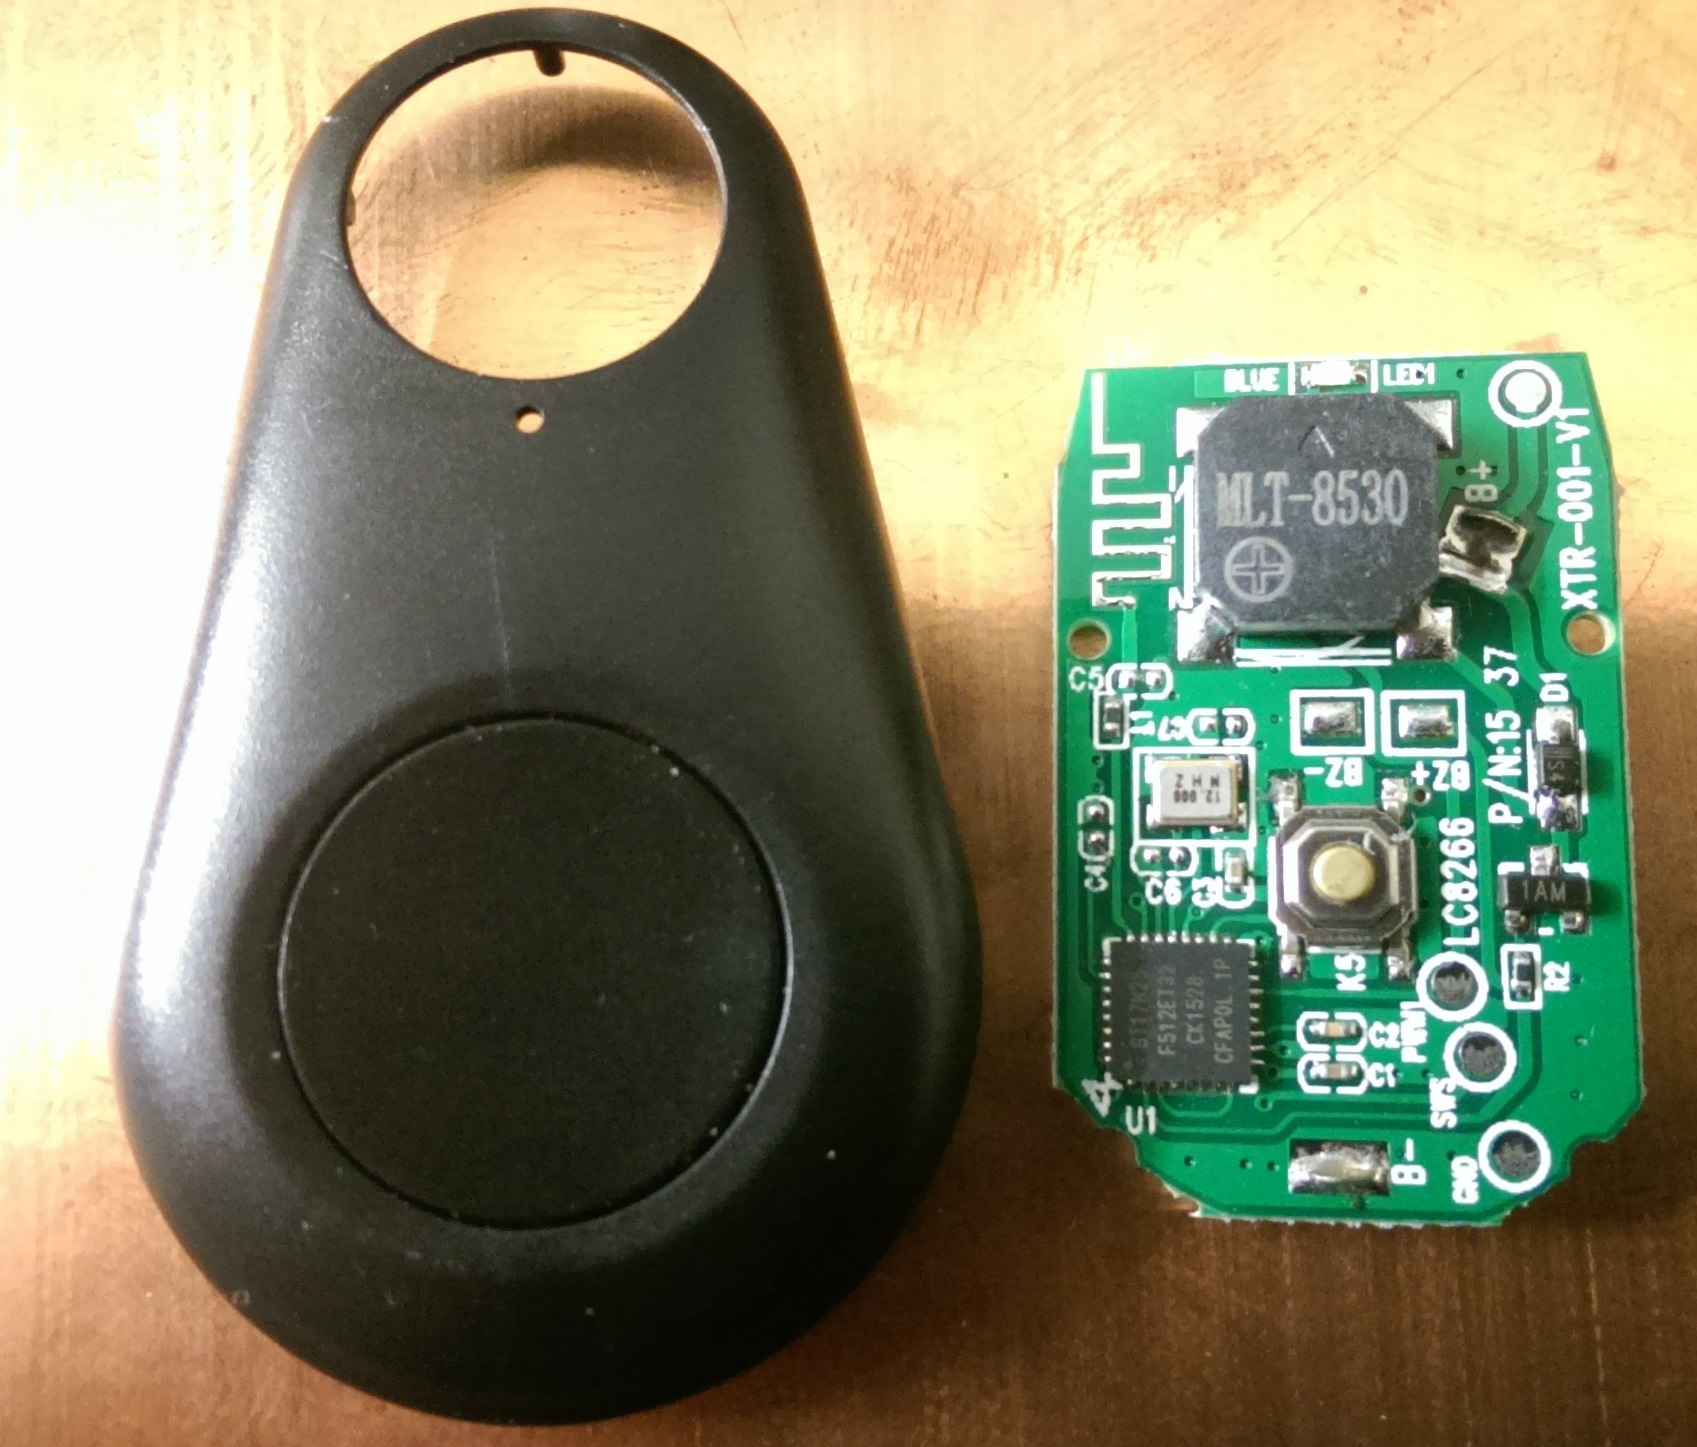 Button and PCB